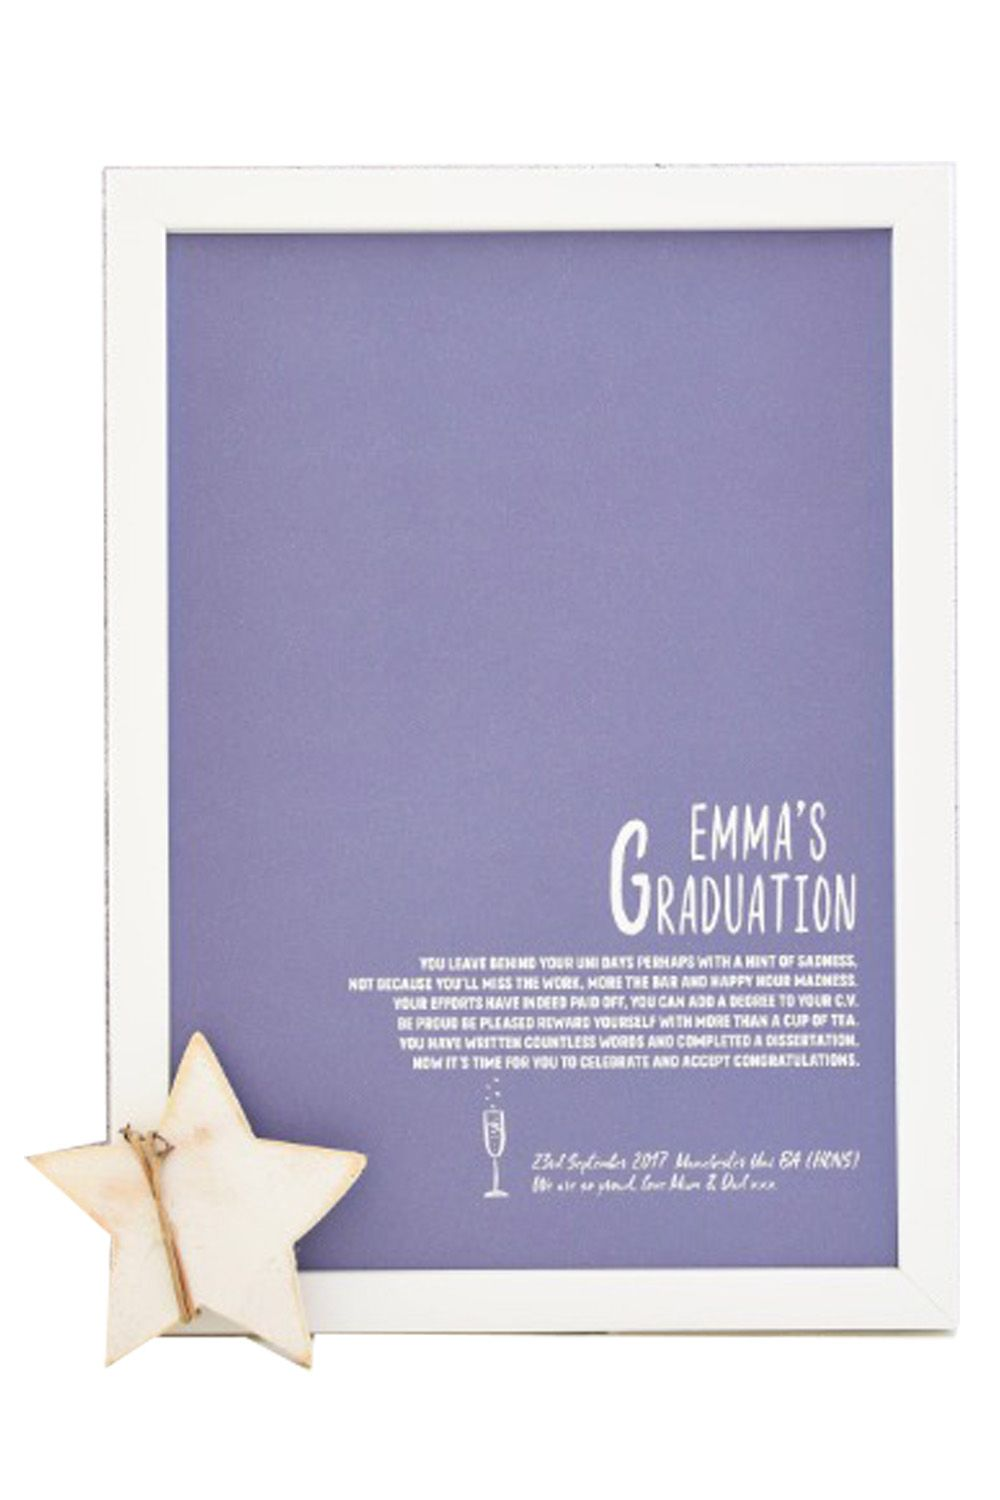 Graduation gifts - Graduation gifts for her